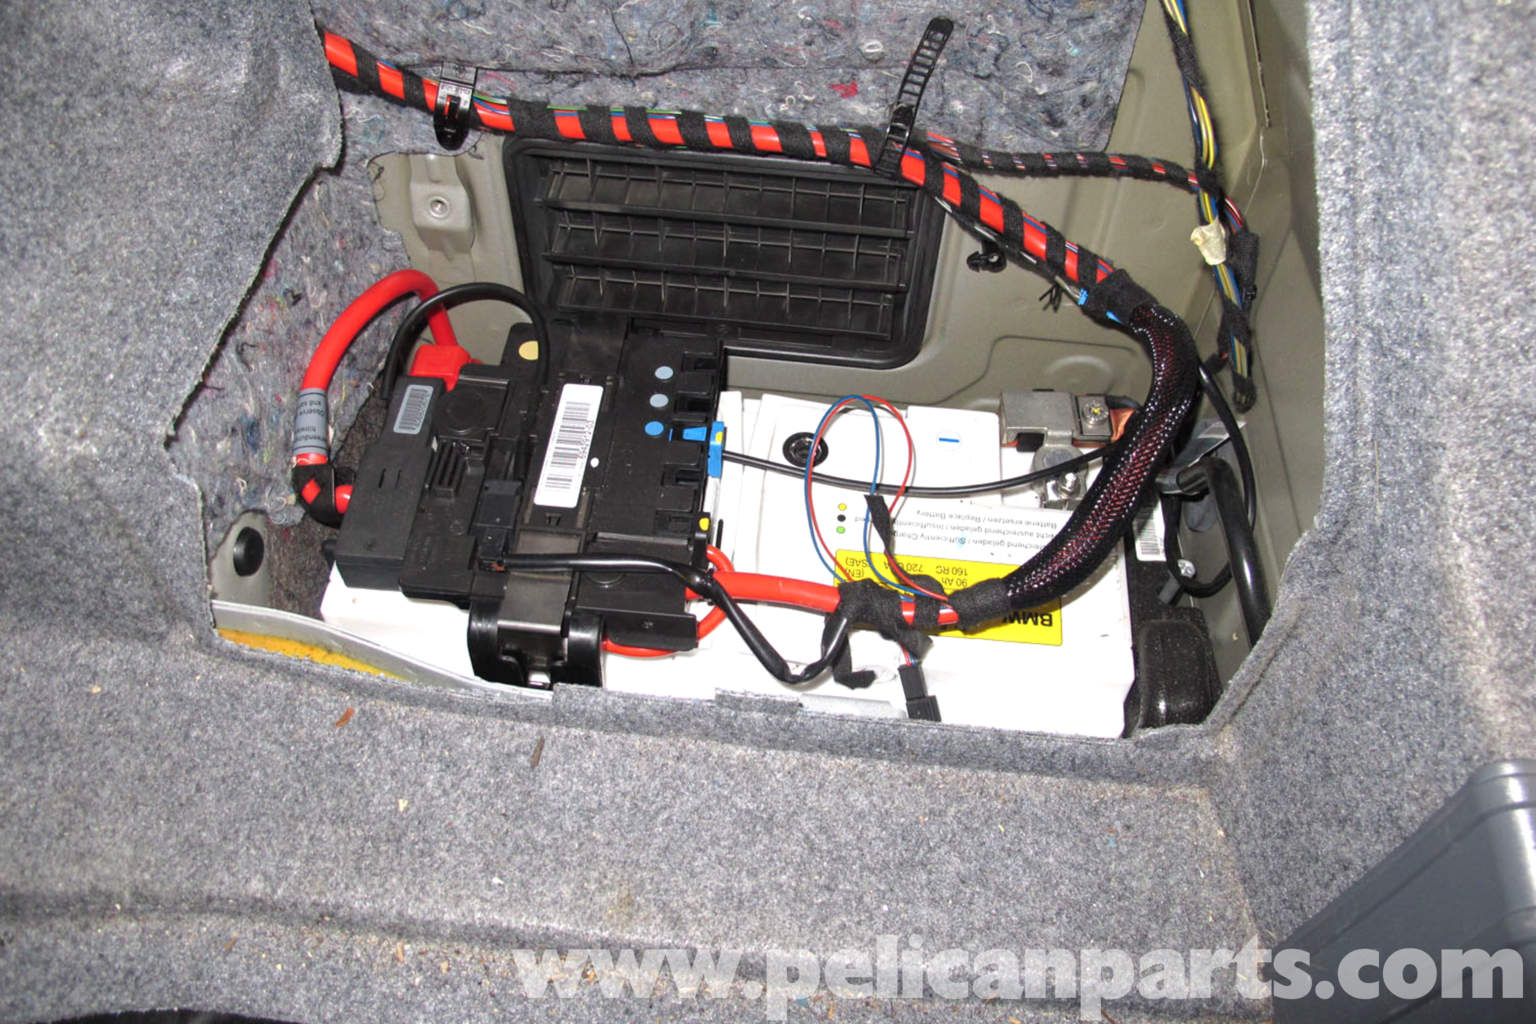 pic01 e90 m3 fuse box e39 fuse box wiring diagram ~ odicis e90 m3 fuse box location at panicattacktreatment.co